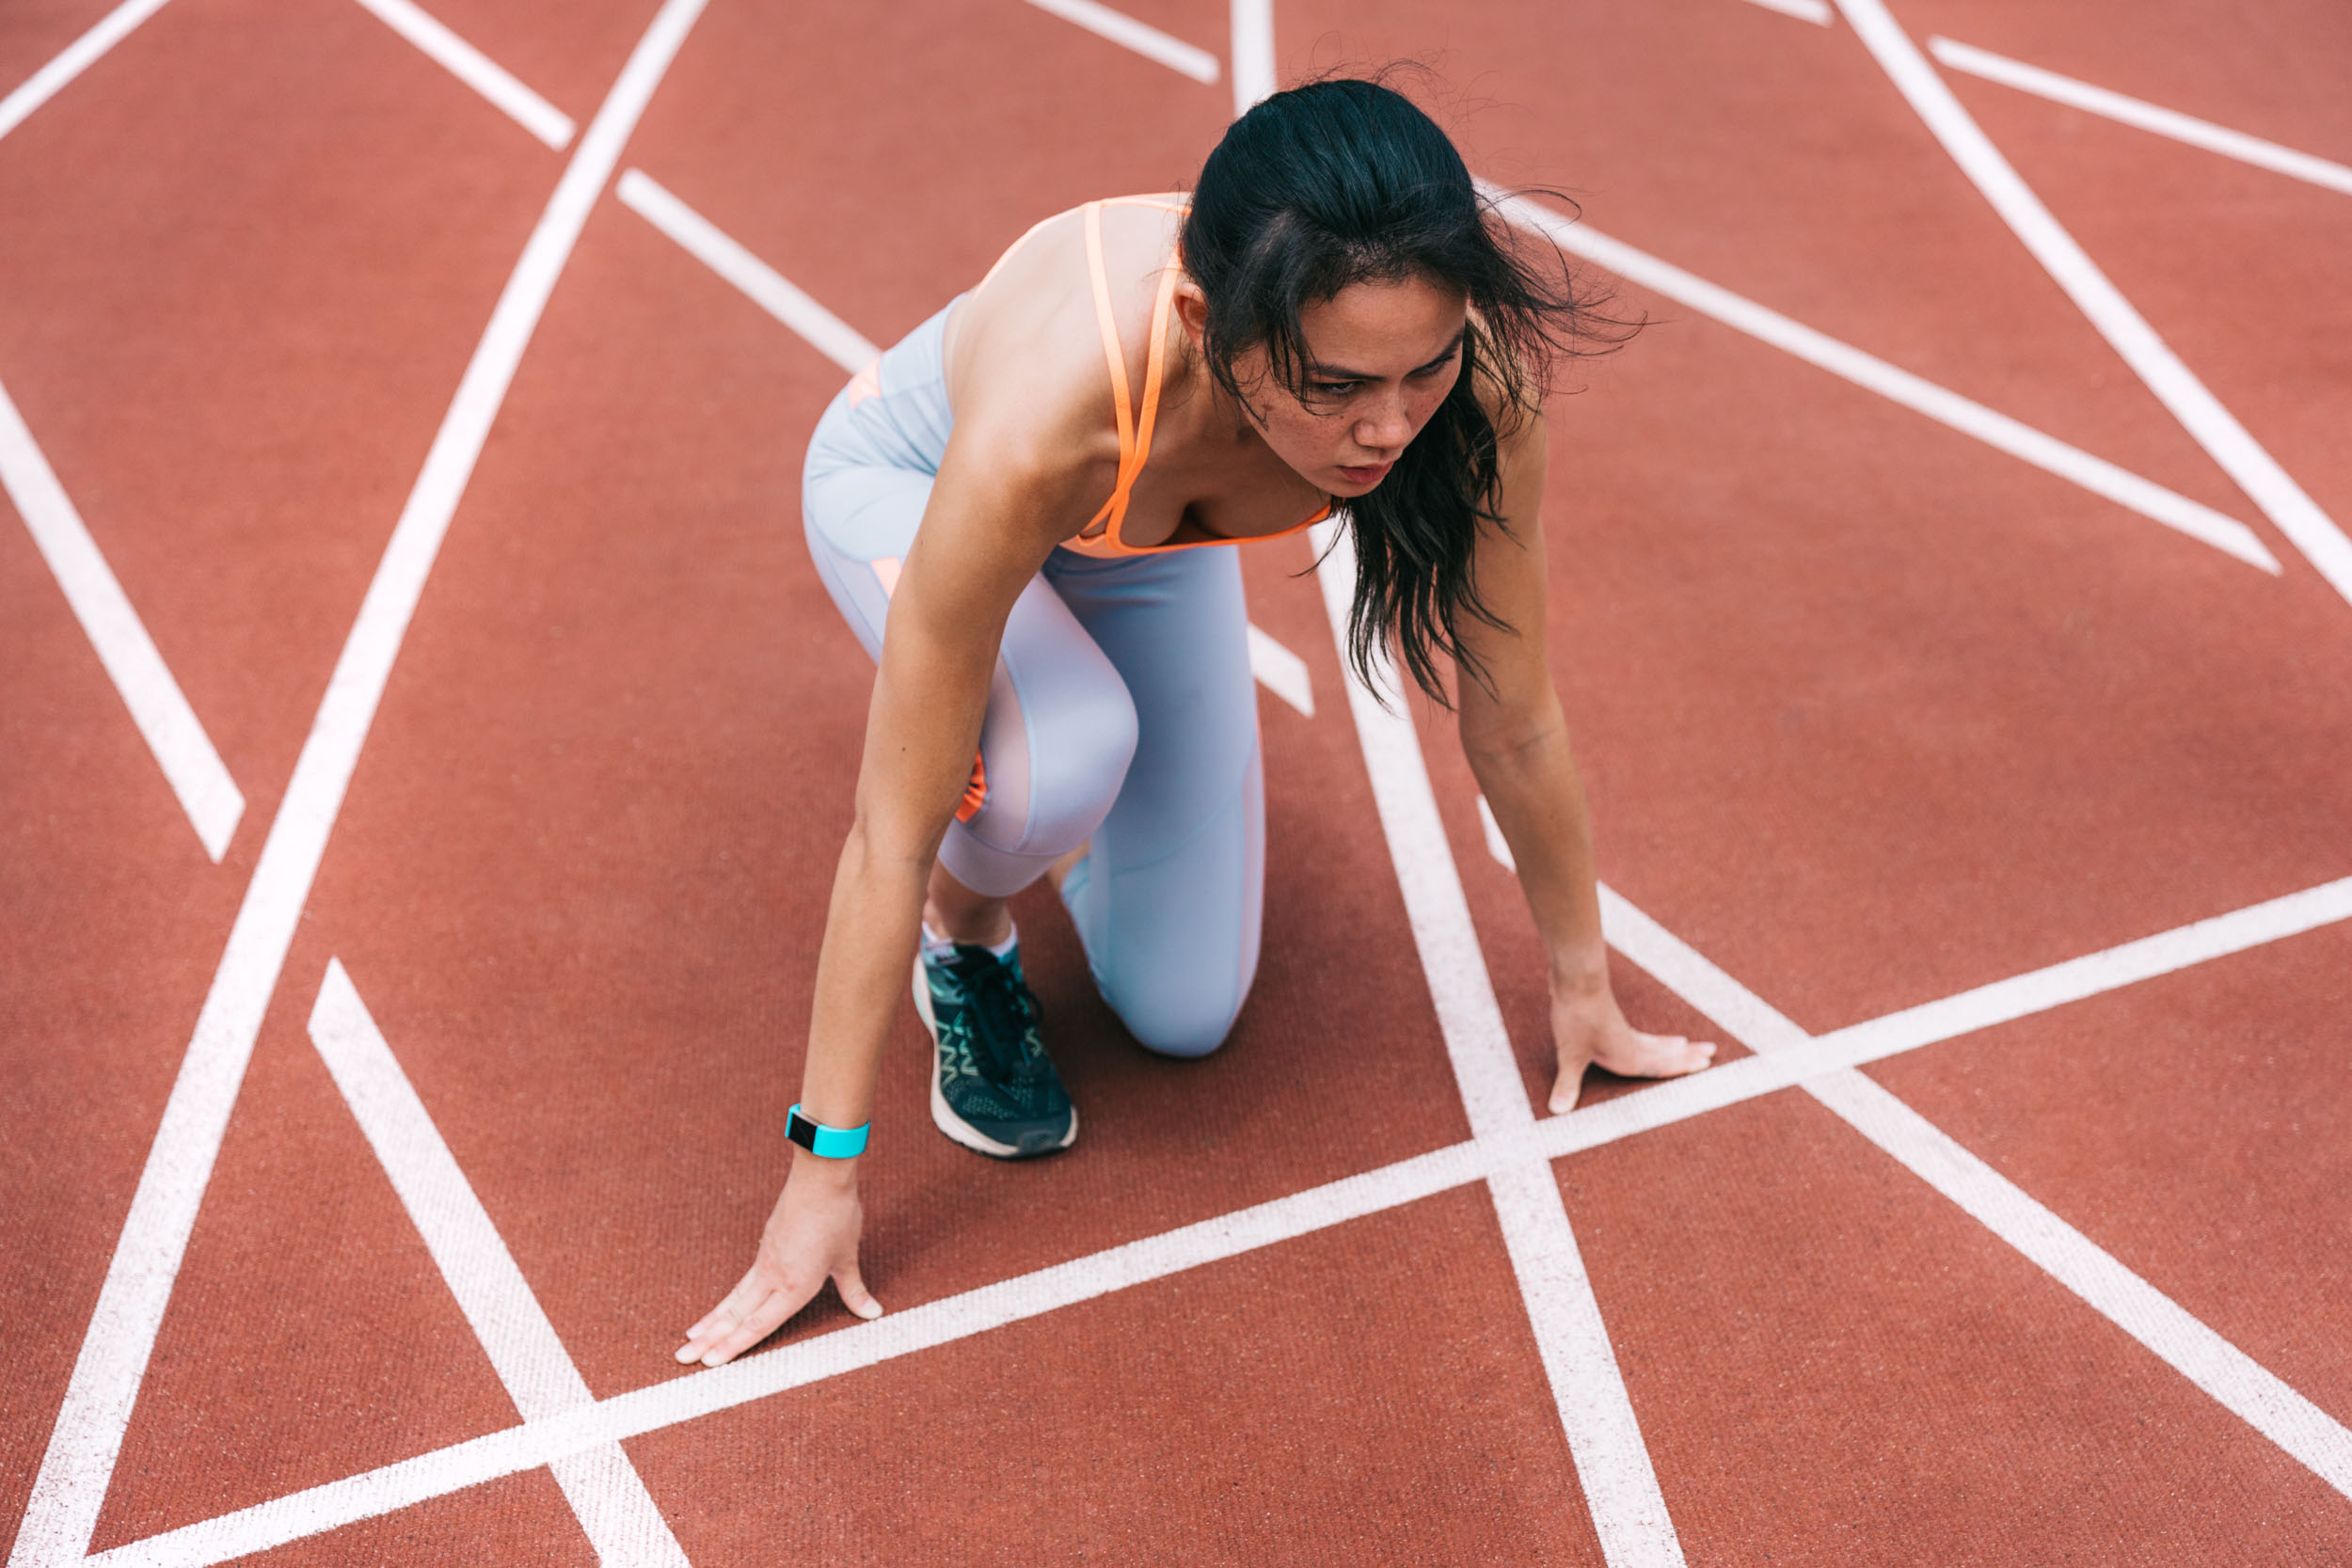 A female athlete on a track in San Francisco